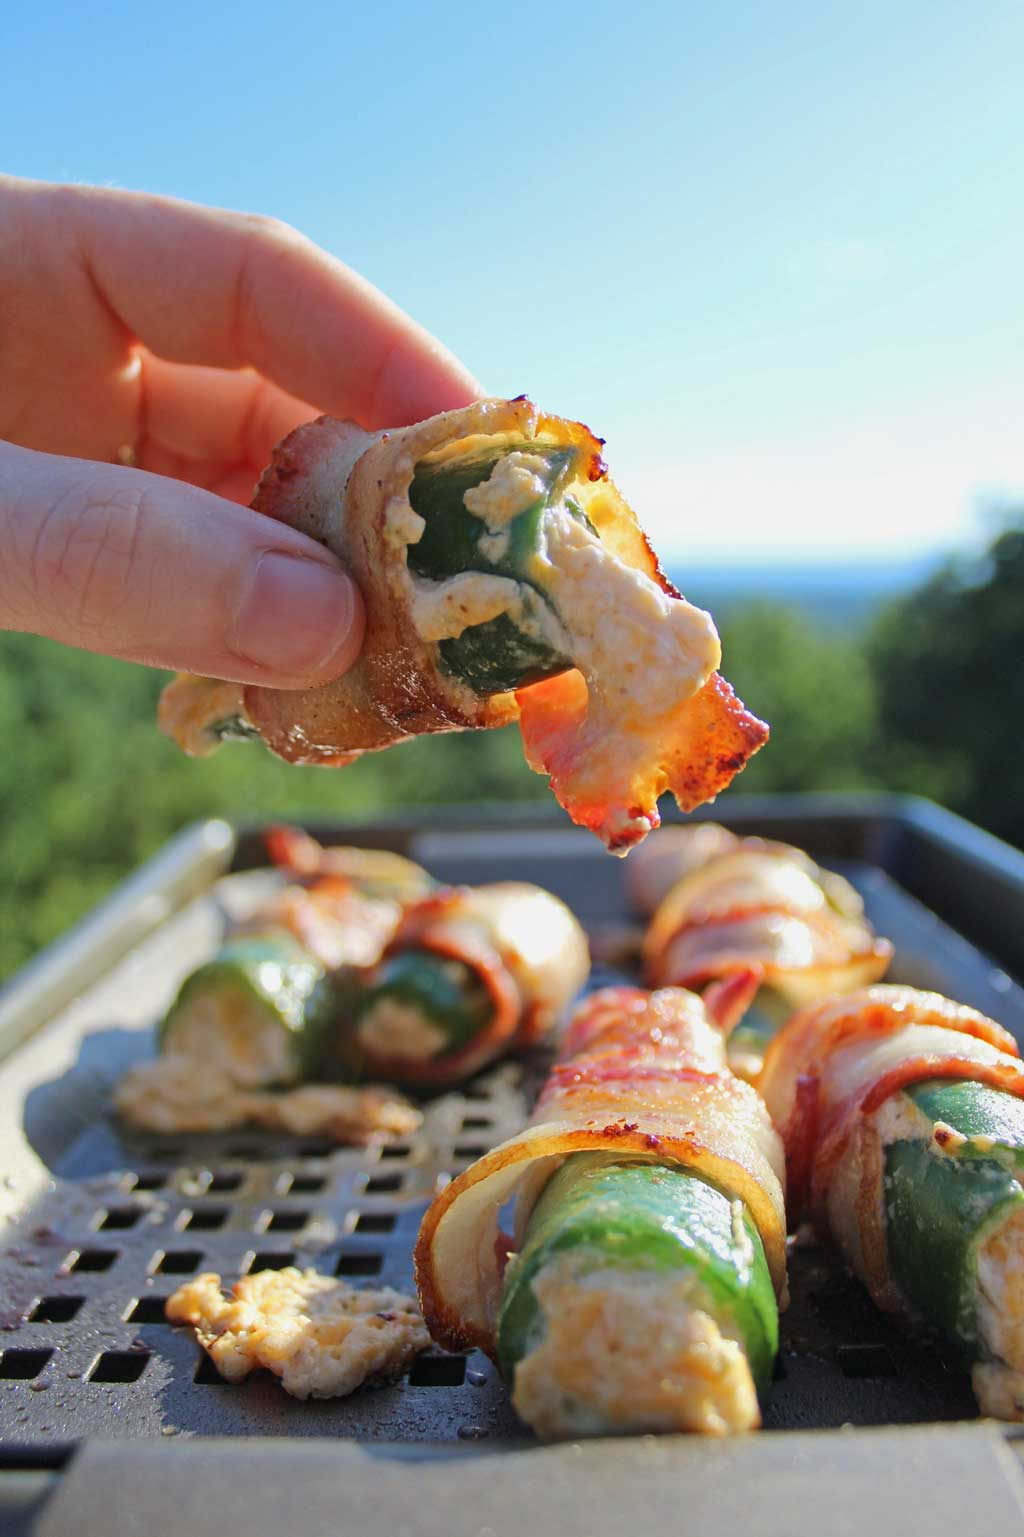 These grilled bacon wrapped jalapeño poppers are stuffed with two different kinds of cheese, wrapped in bacon and grilled until crispy and bursting with flavor! #jalapenopoppers #grilled #bacon #summer #grilling #recipes